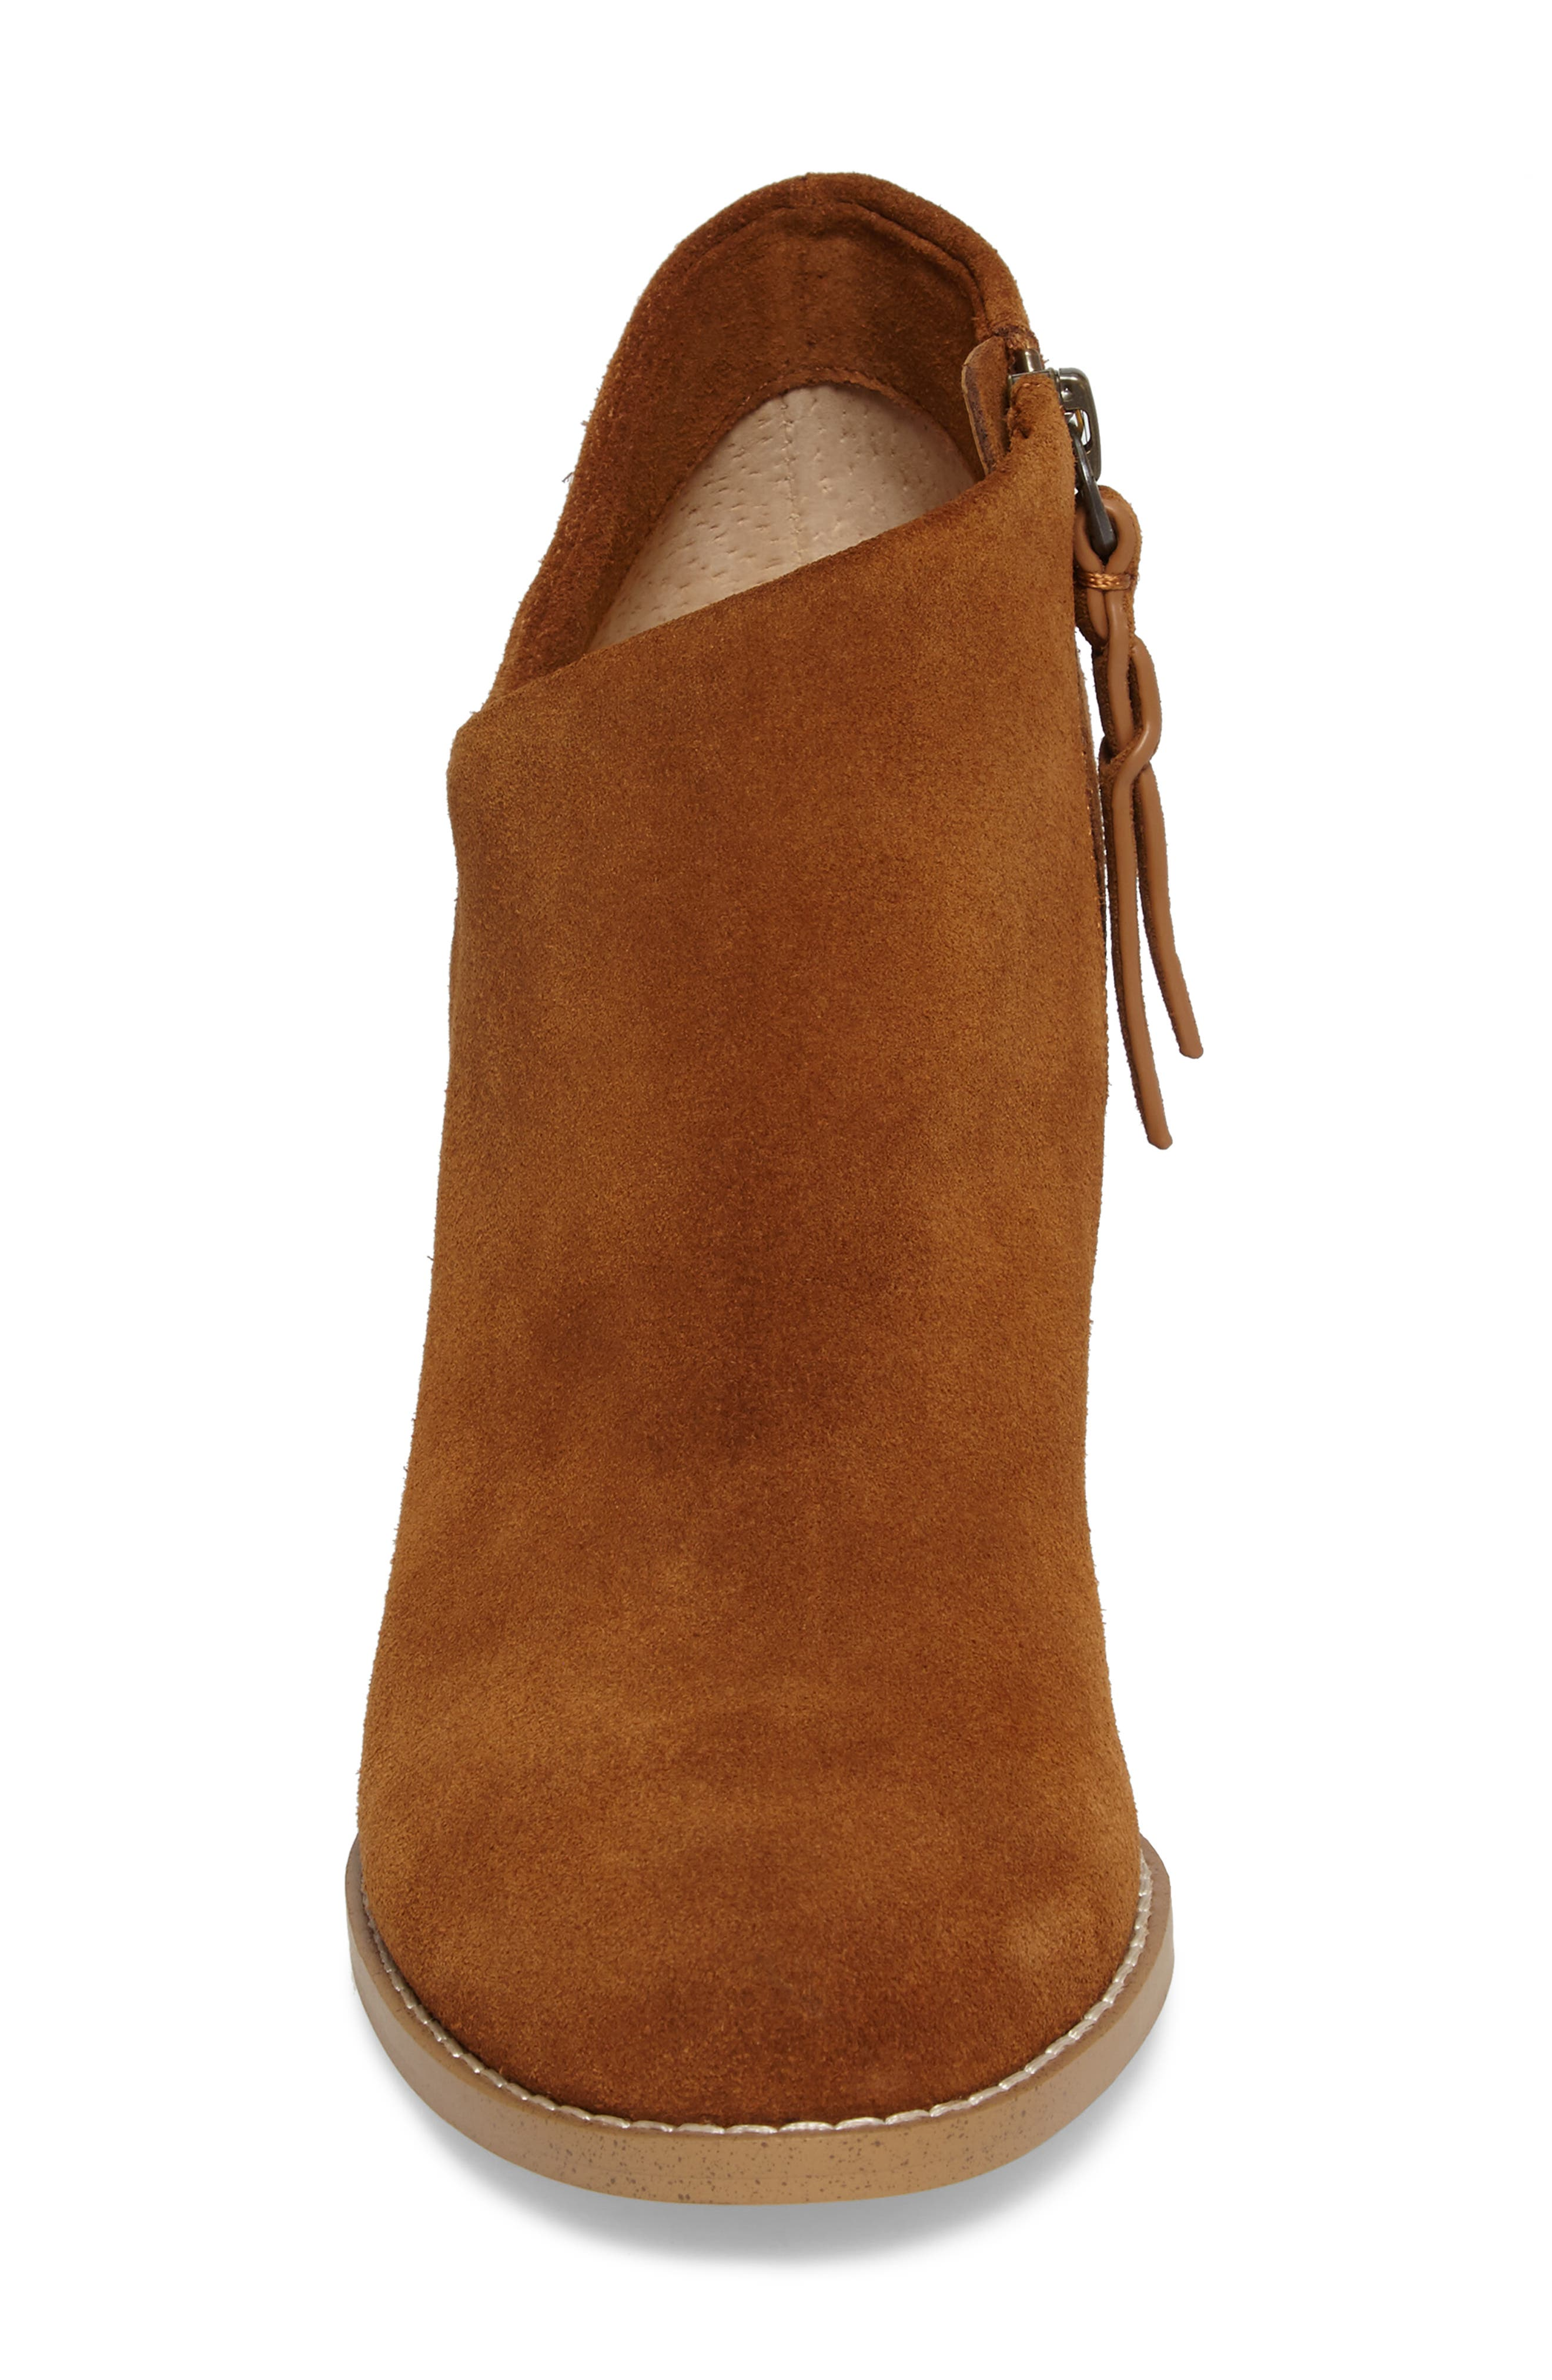 Daphne Bootie,                             Alternate thumbnail 4, color,                             Whiskey Suede